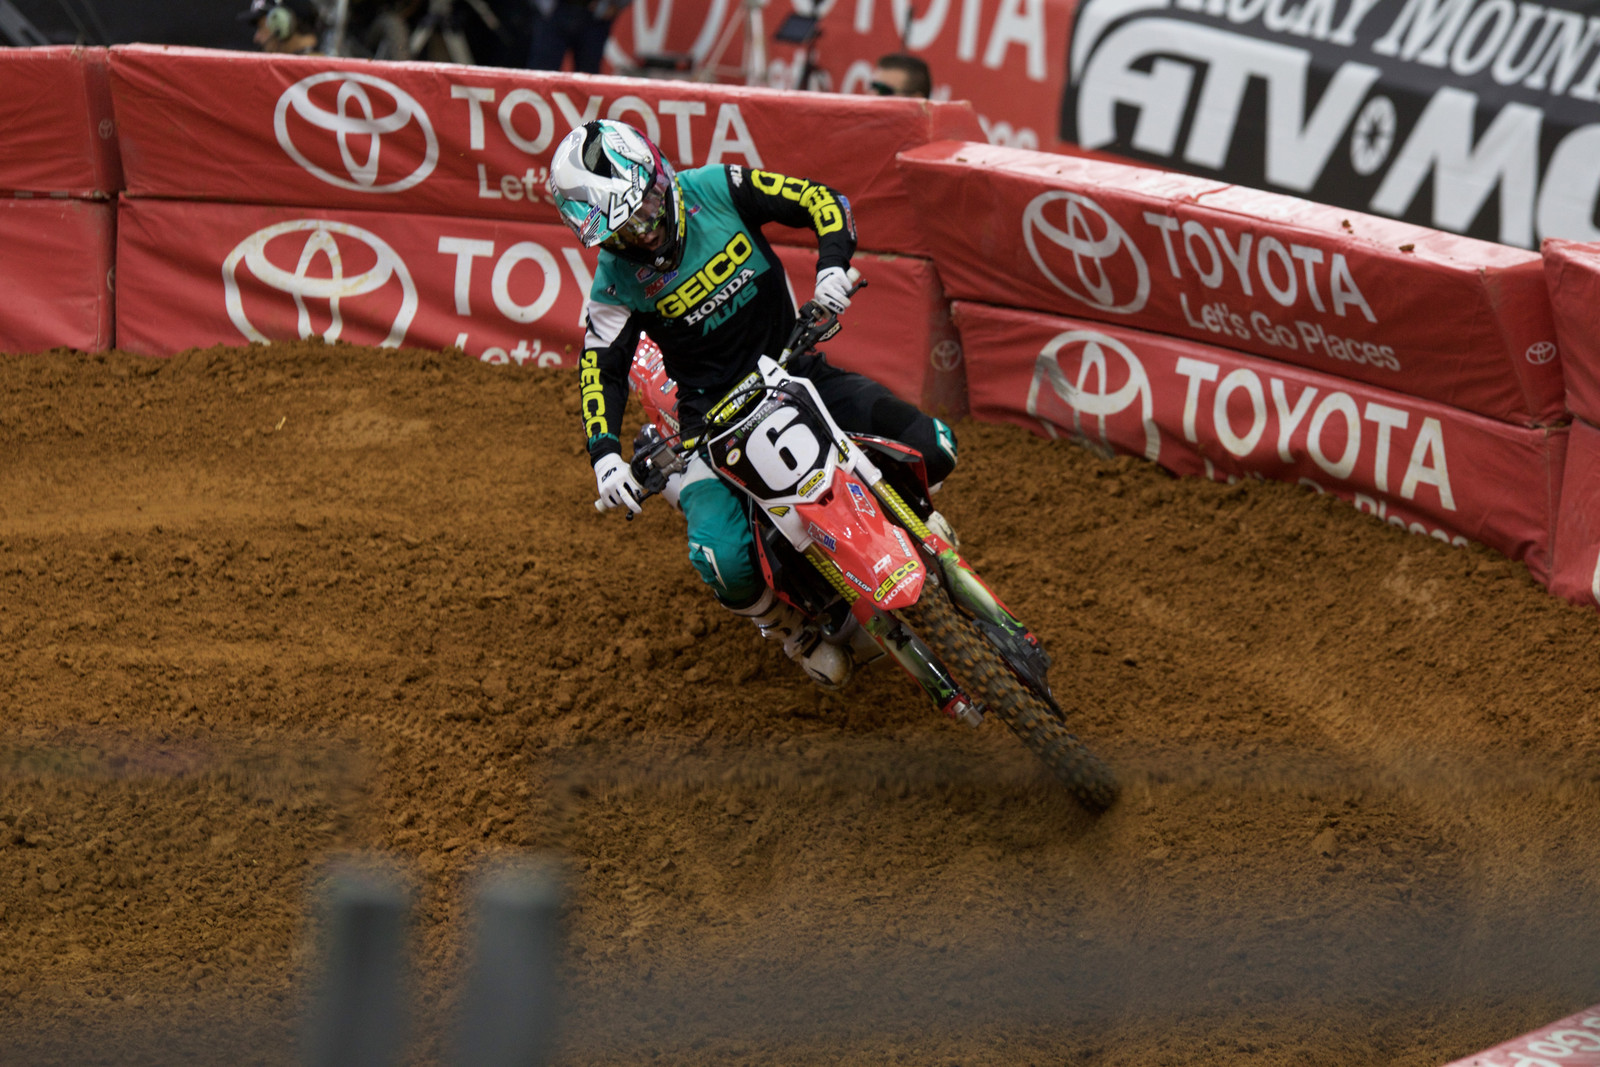 Jeremy Martin - Views from the Stands - 2017 Arlington SX - Motocross Pictures - Vital MX